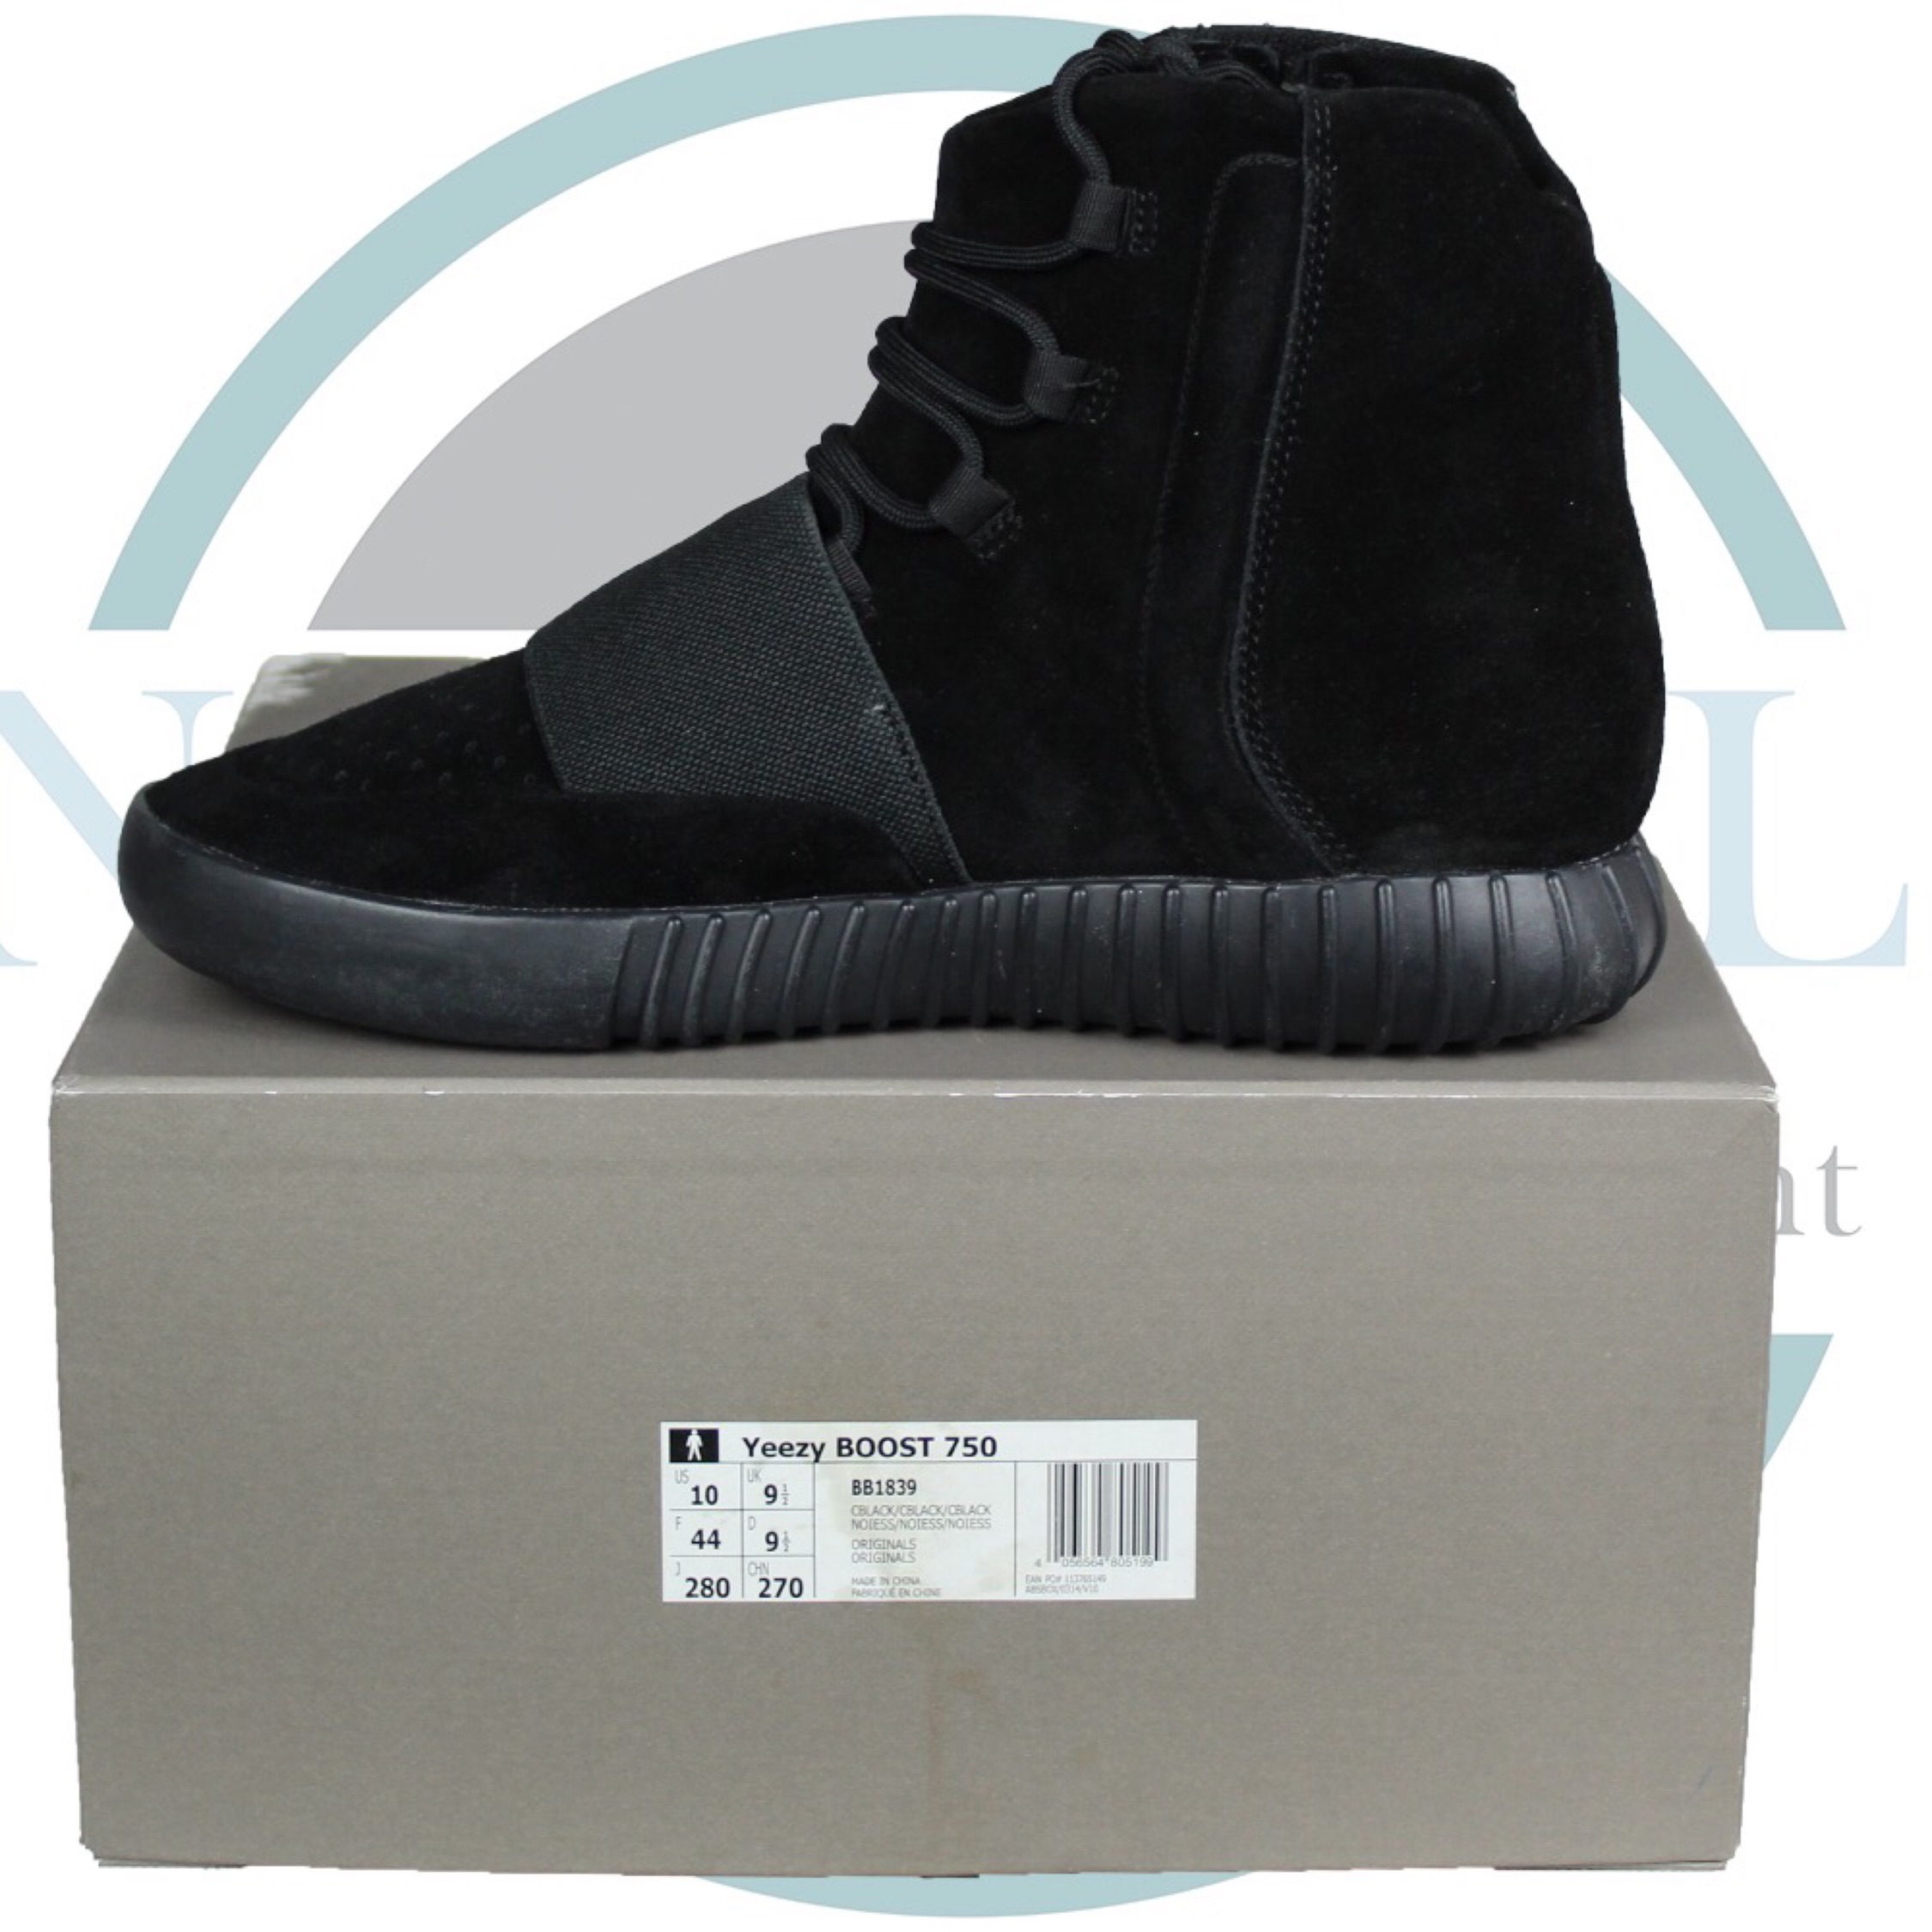 new product a7df3 5a519 Adidas Yeezy Boost 750 Triple Black